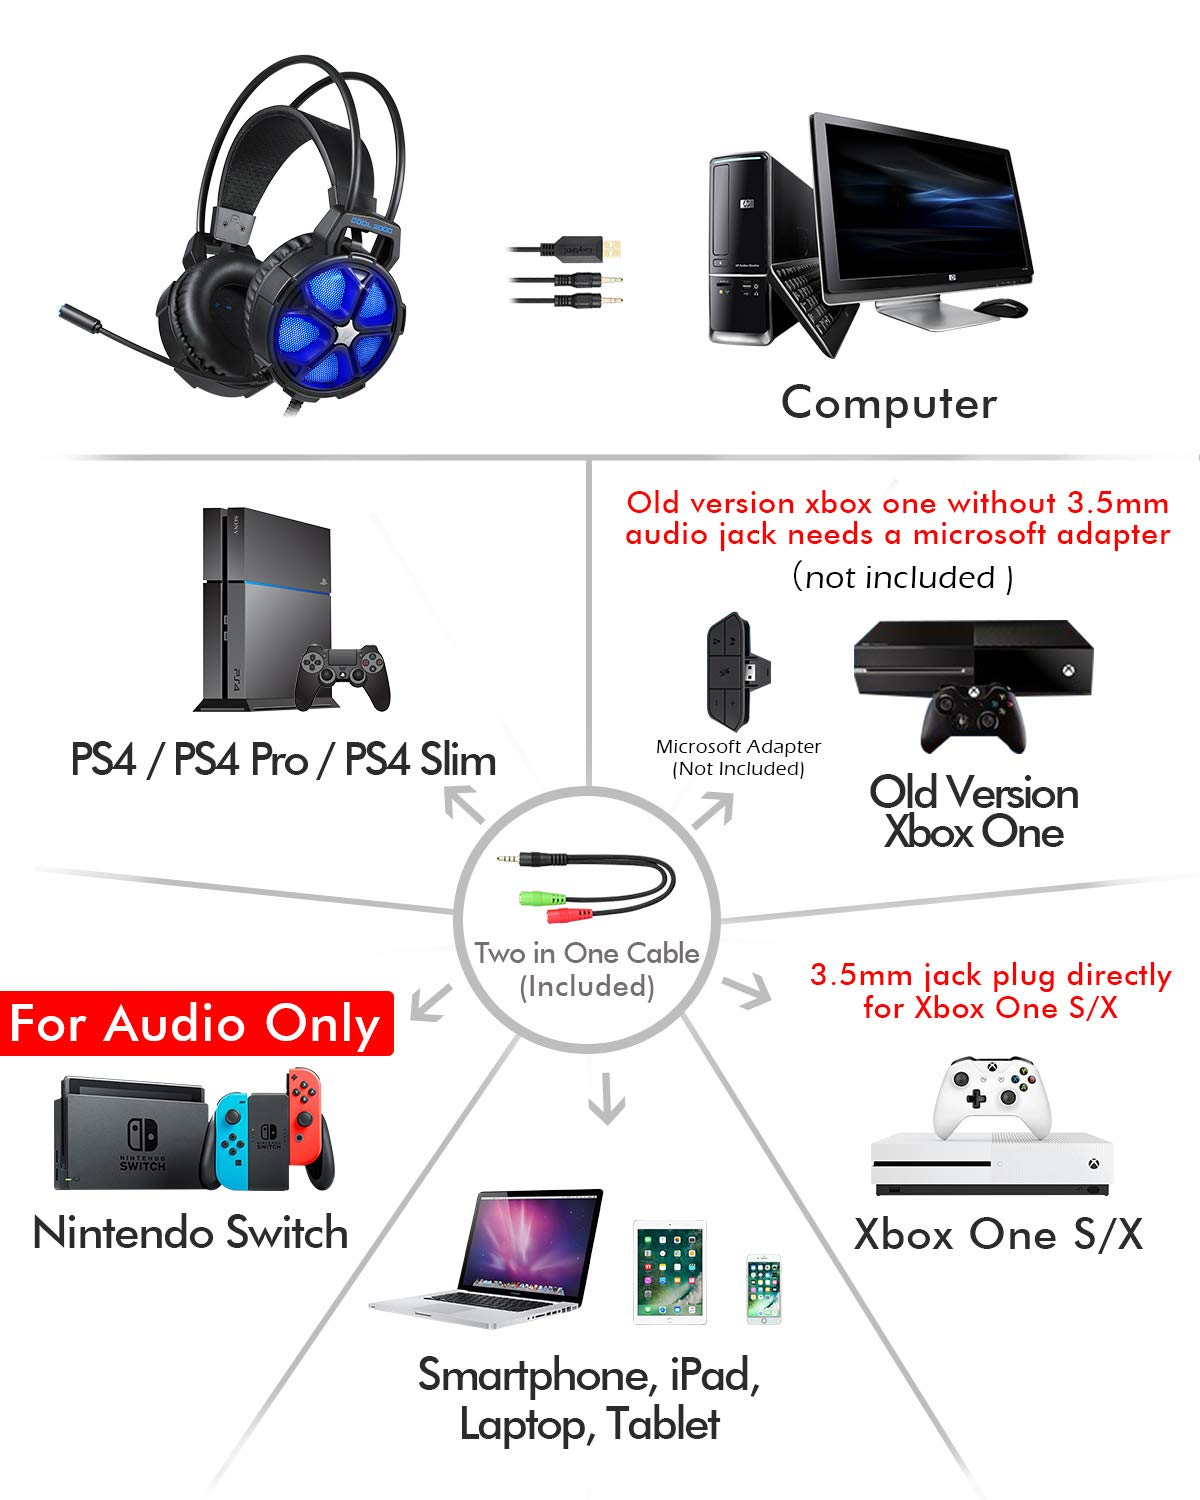 [2017 New Released New Xbox One PS4 PC Gaming Headset] EasySMX V350 3.5mm Wired Gaming Headset with Suspension Headband Noise Isolating Over Ear Headphone with Microphone for New Xbox One PS4 Mac etc.